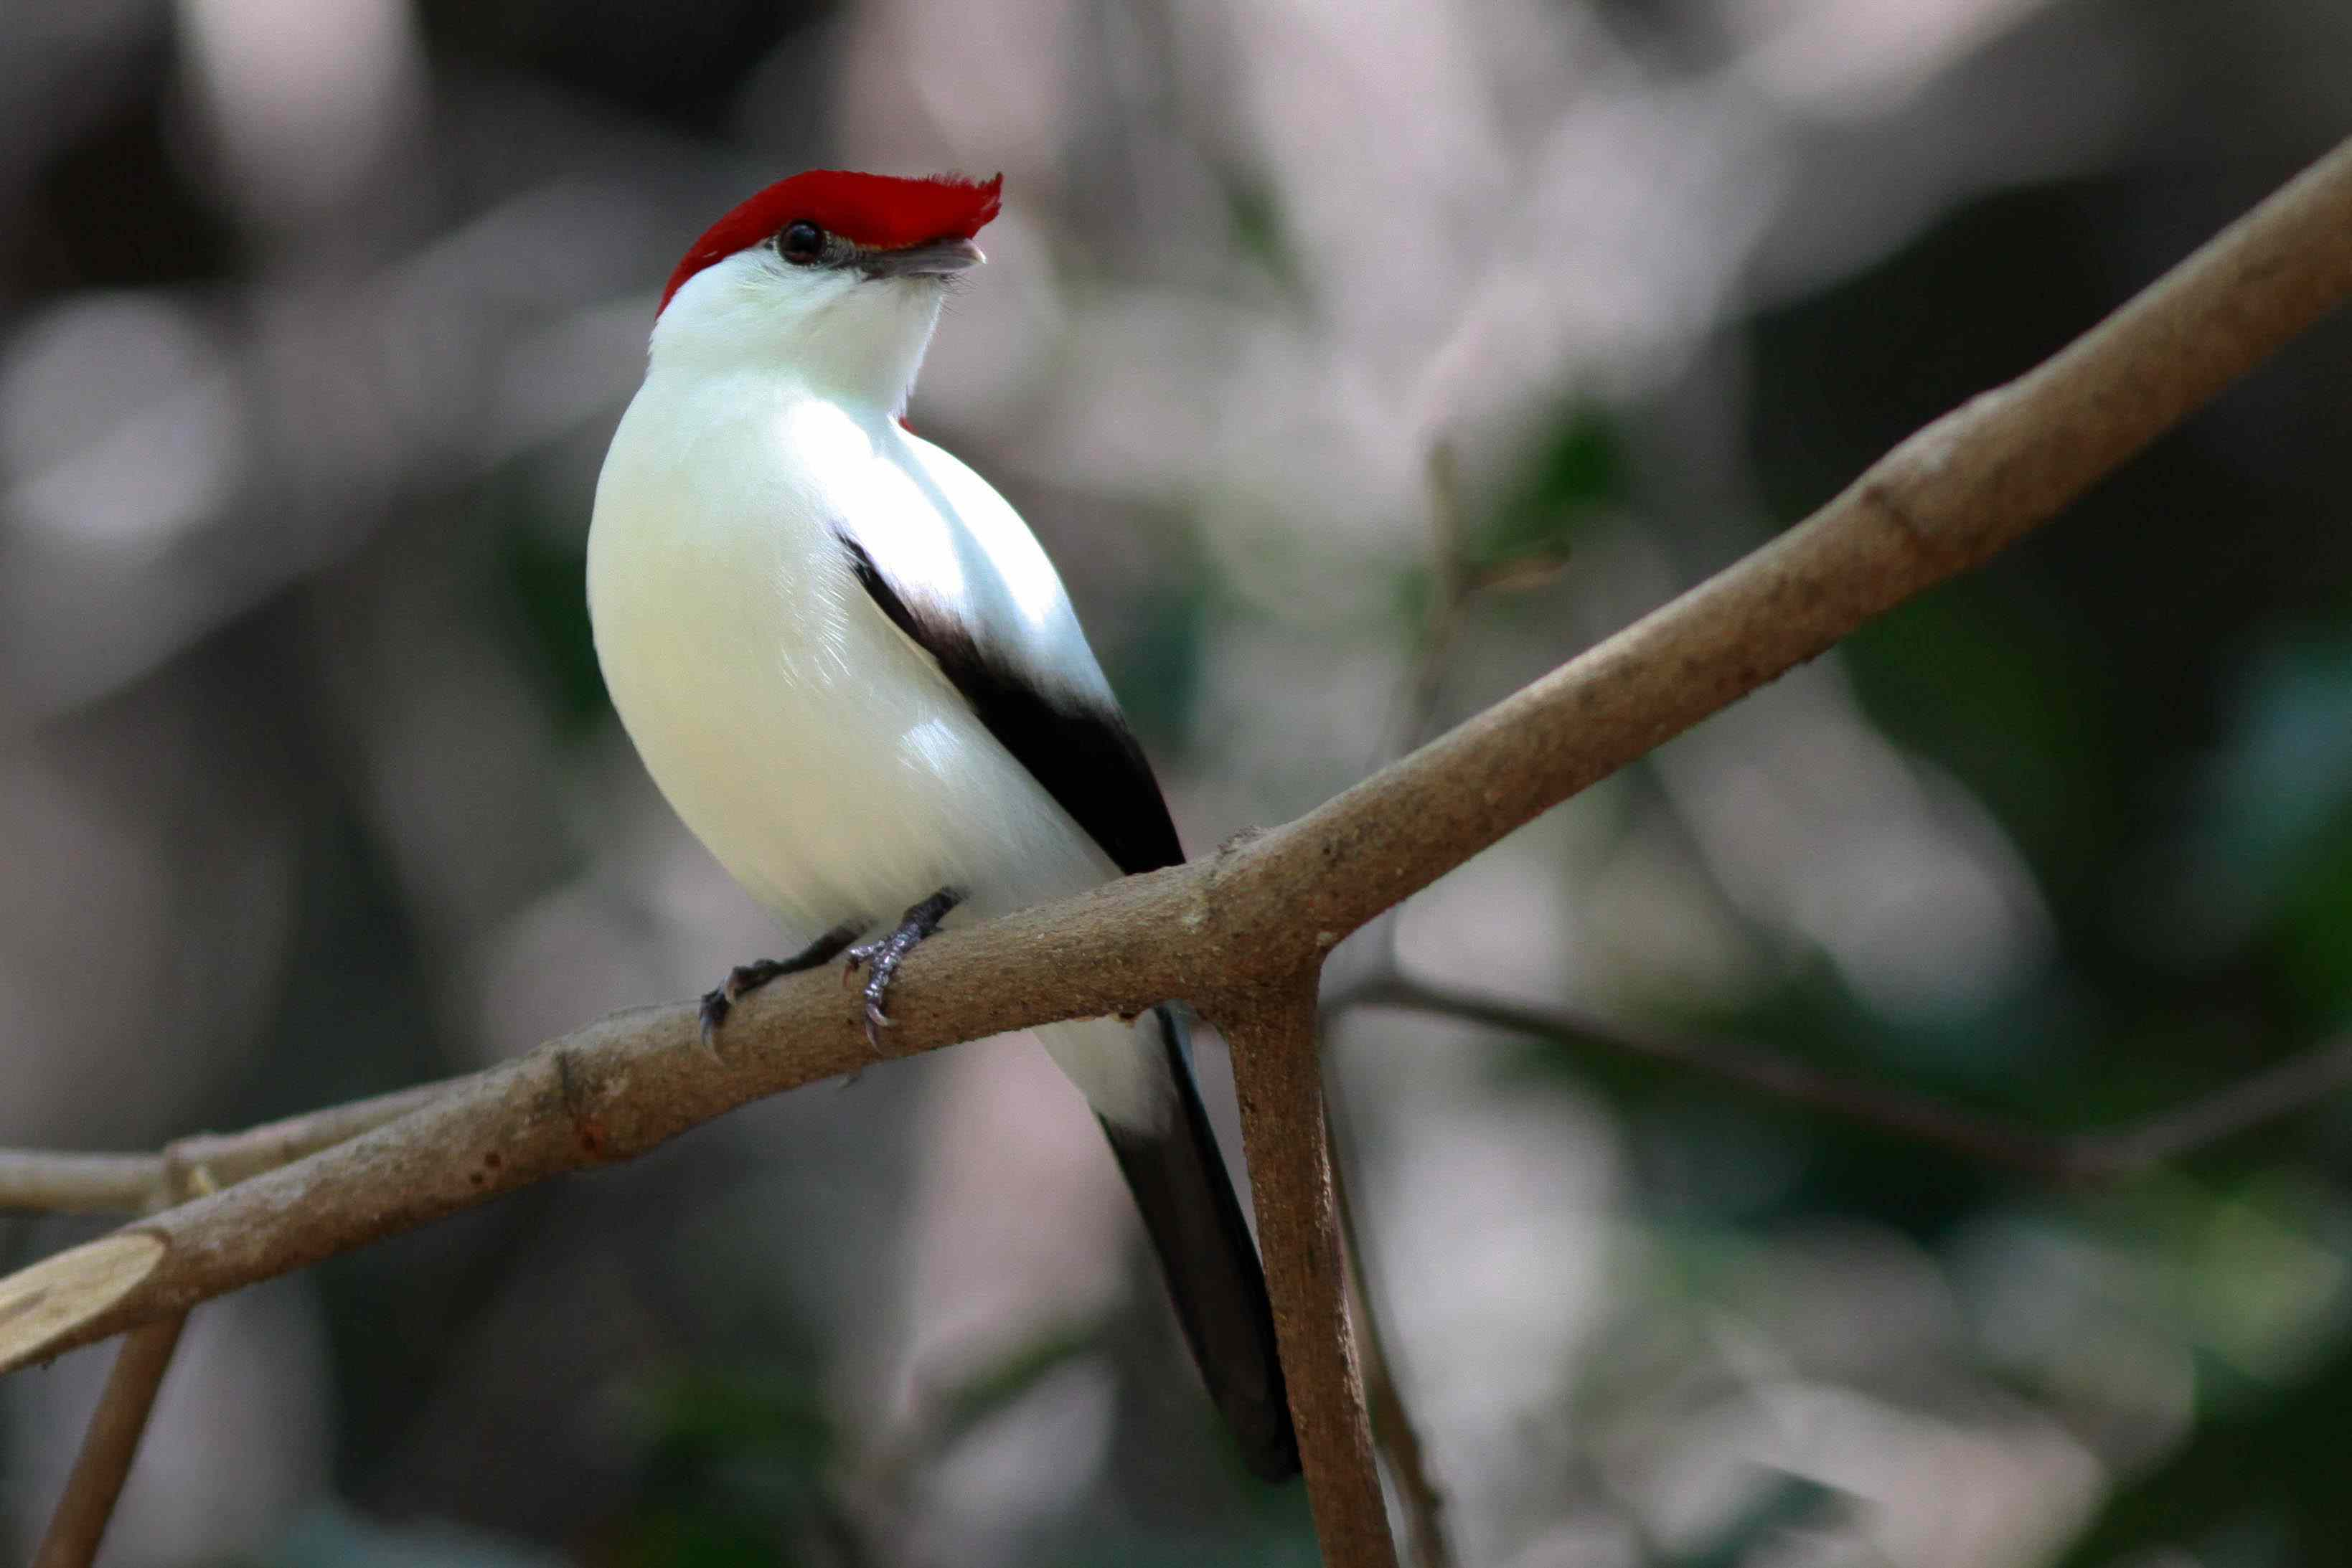 araripe manakin perched on a branch